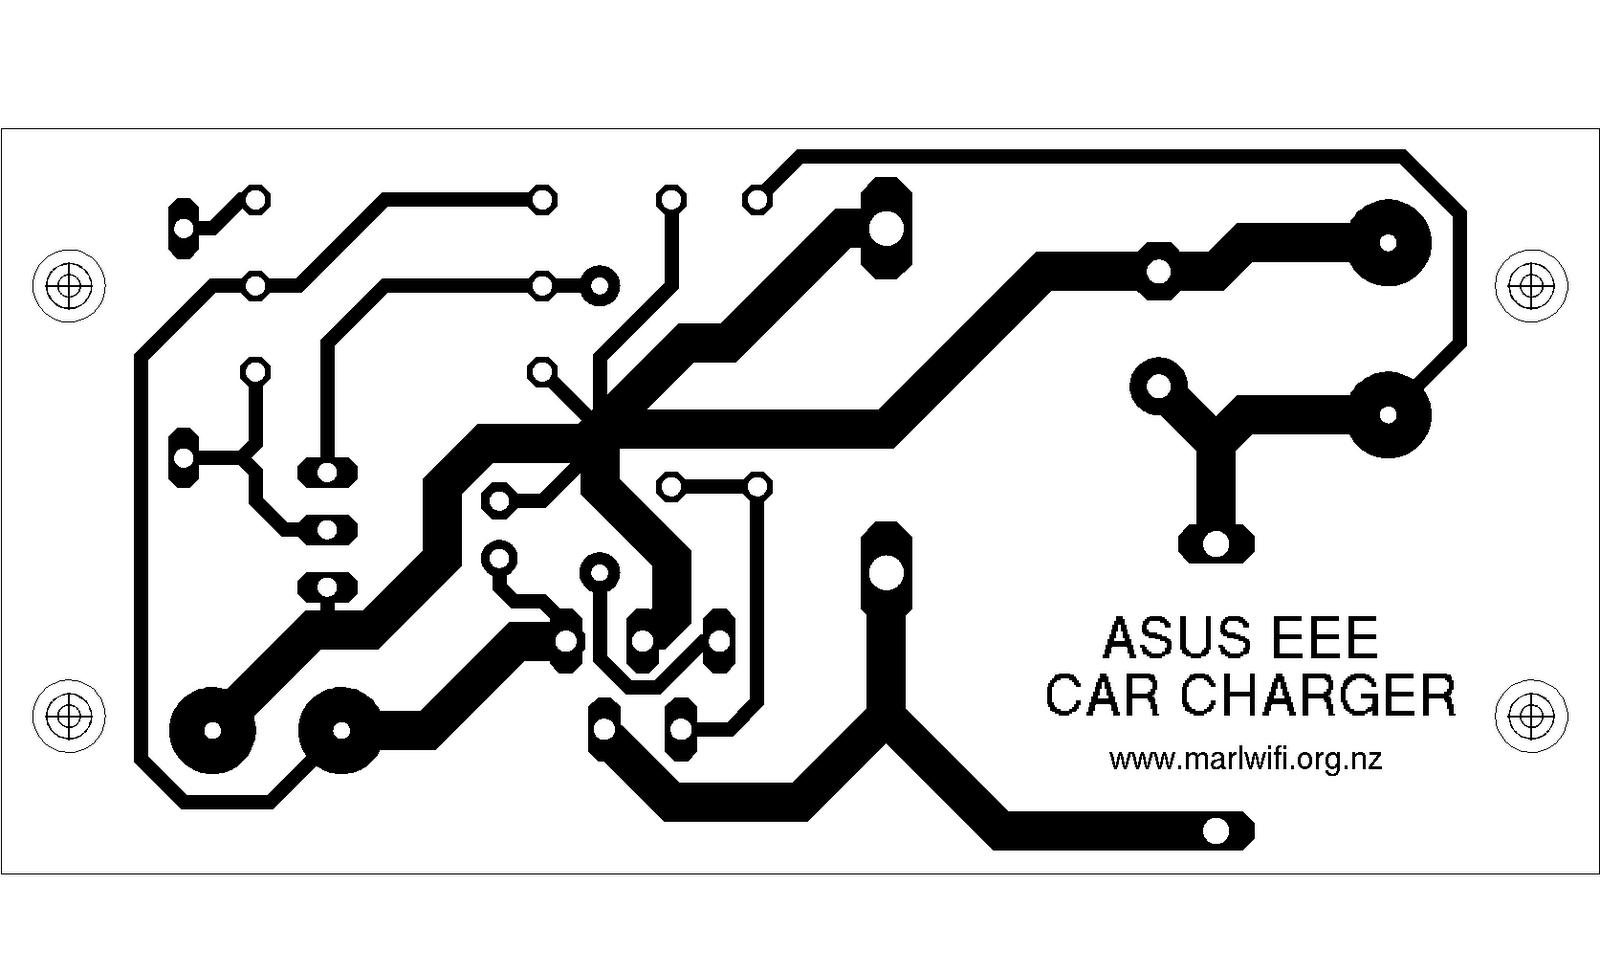 A 12v Car Charger For Asus Eee Notebook